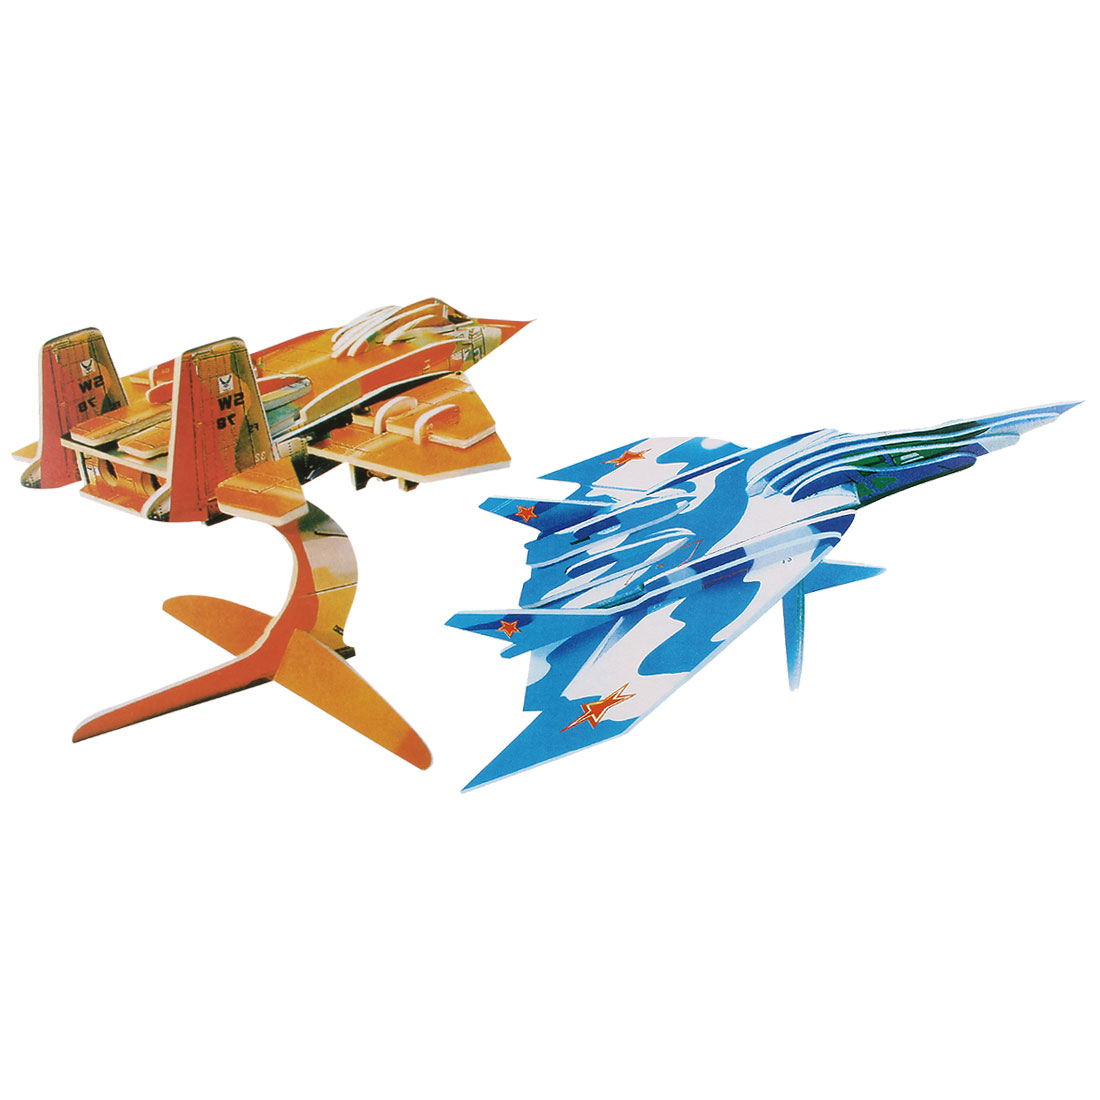 Kids Blue Orange Foam Paper Model Warplane 3D Educational Puzzle Toy 2 in 1